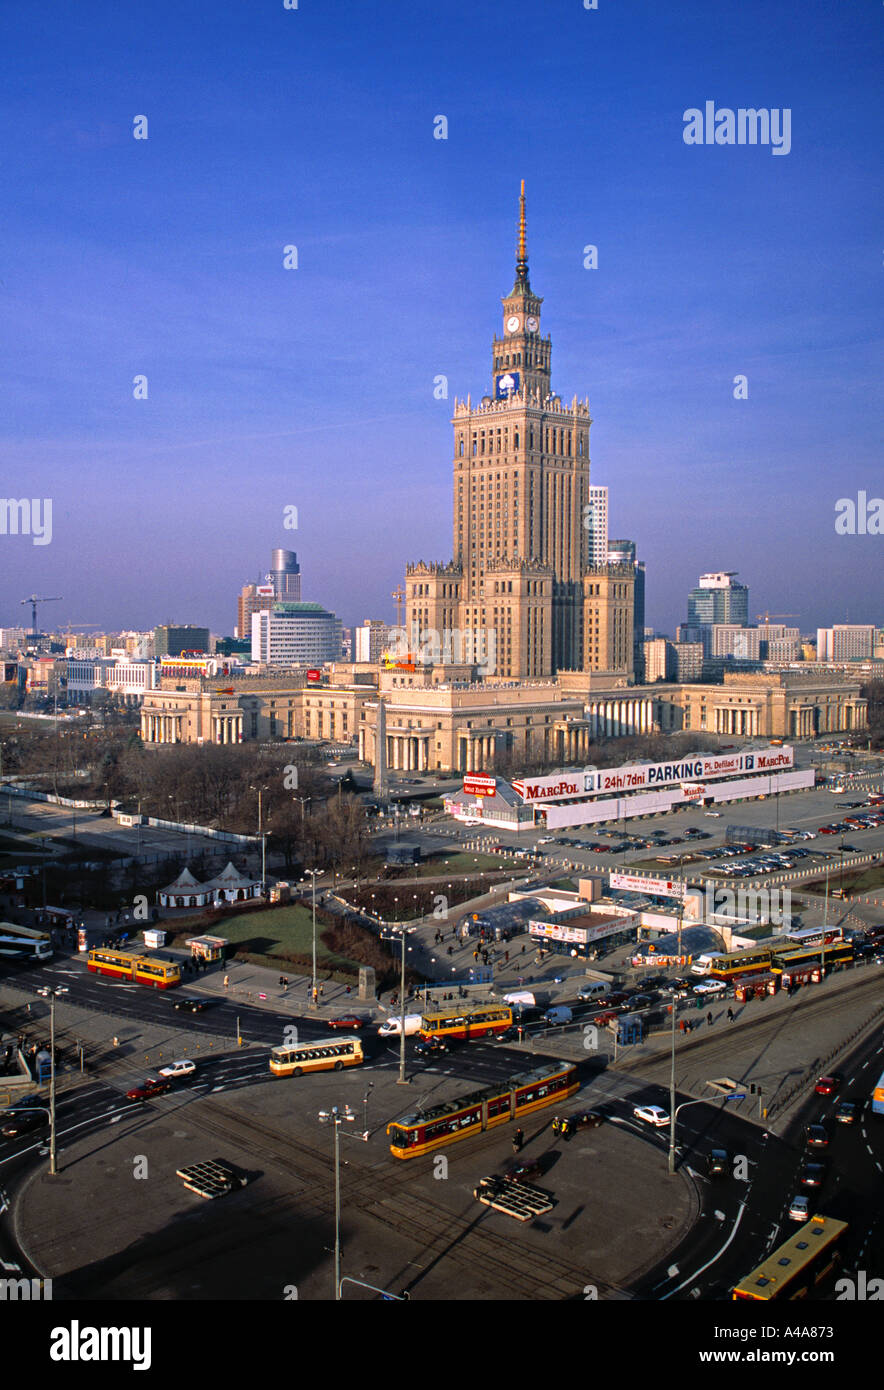 Palace of Culture, Warsaw, Poland - Stock Image